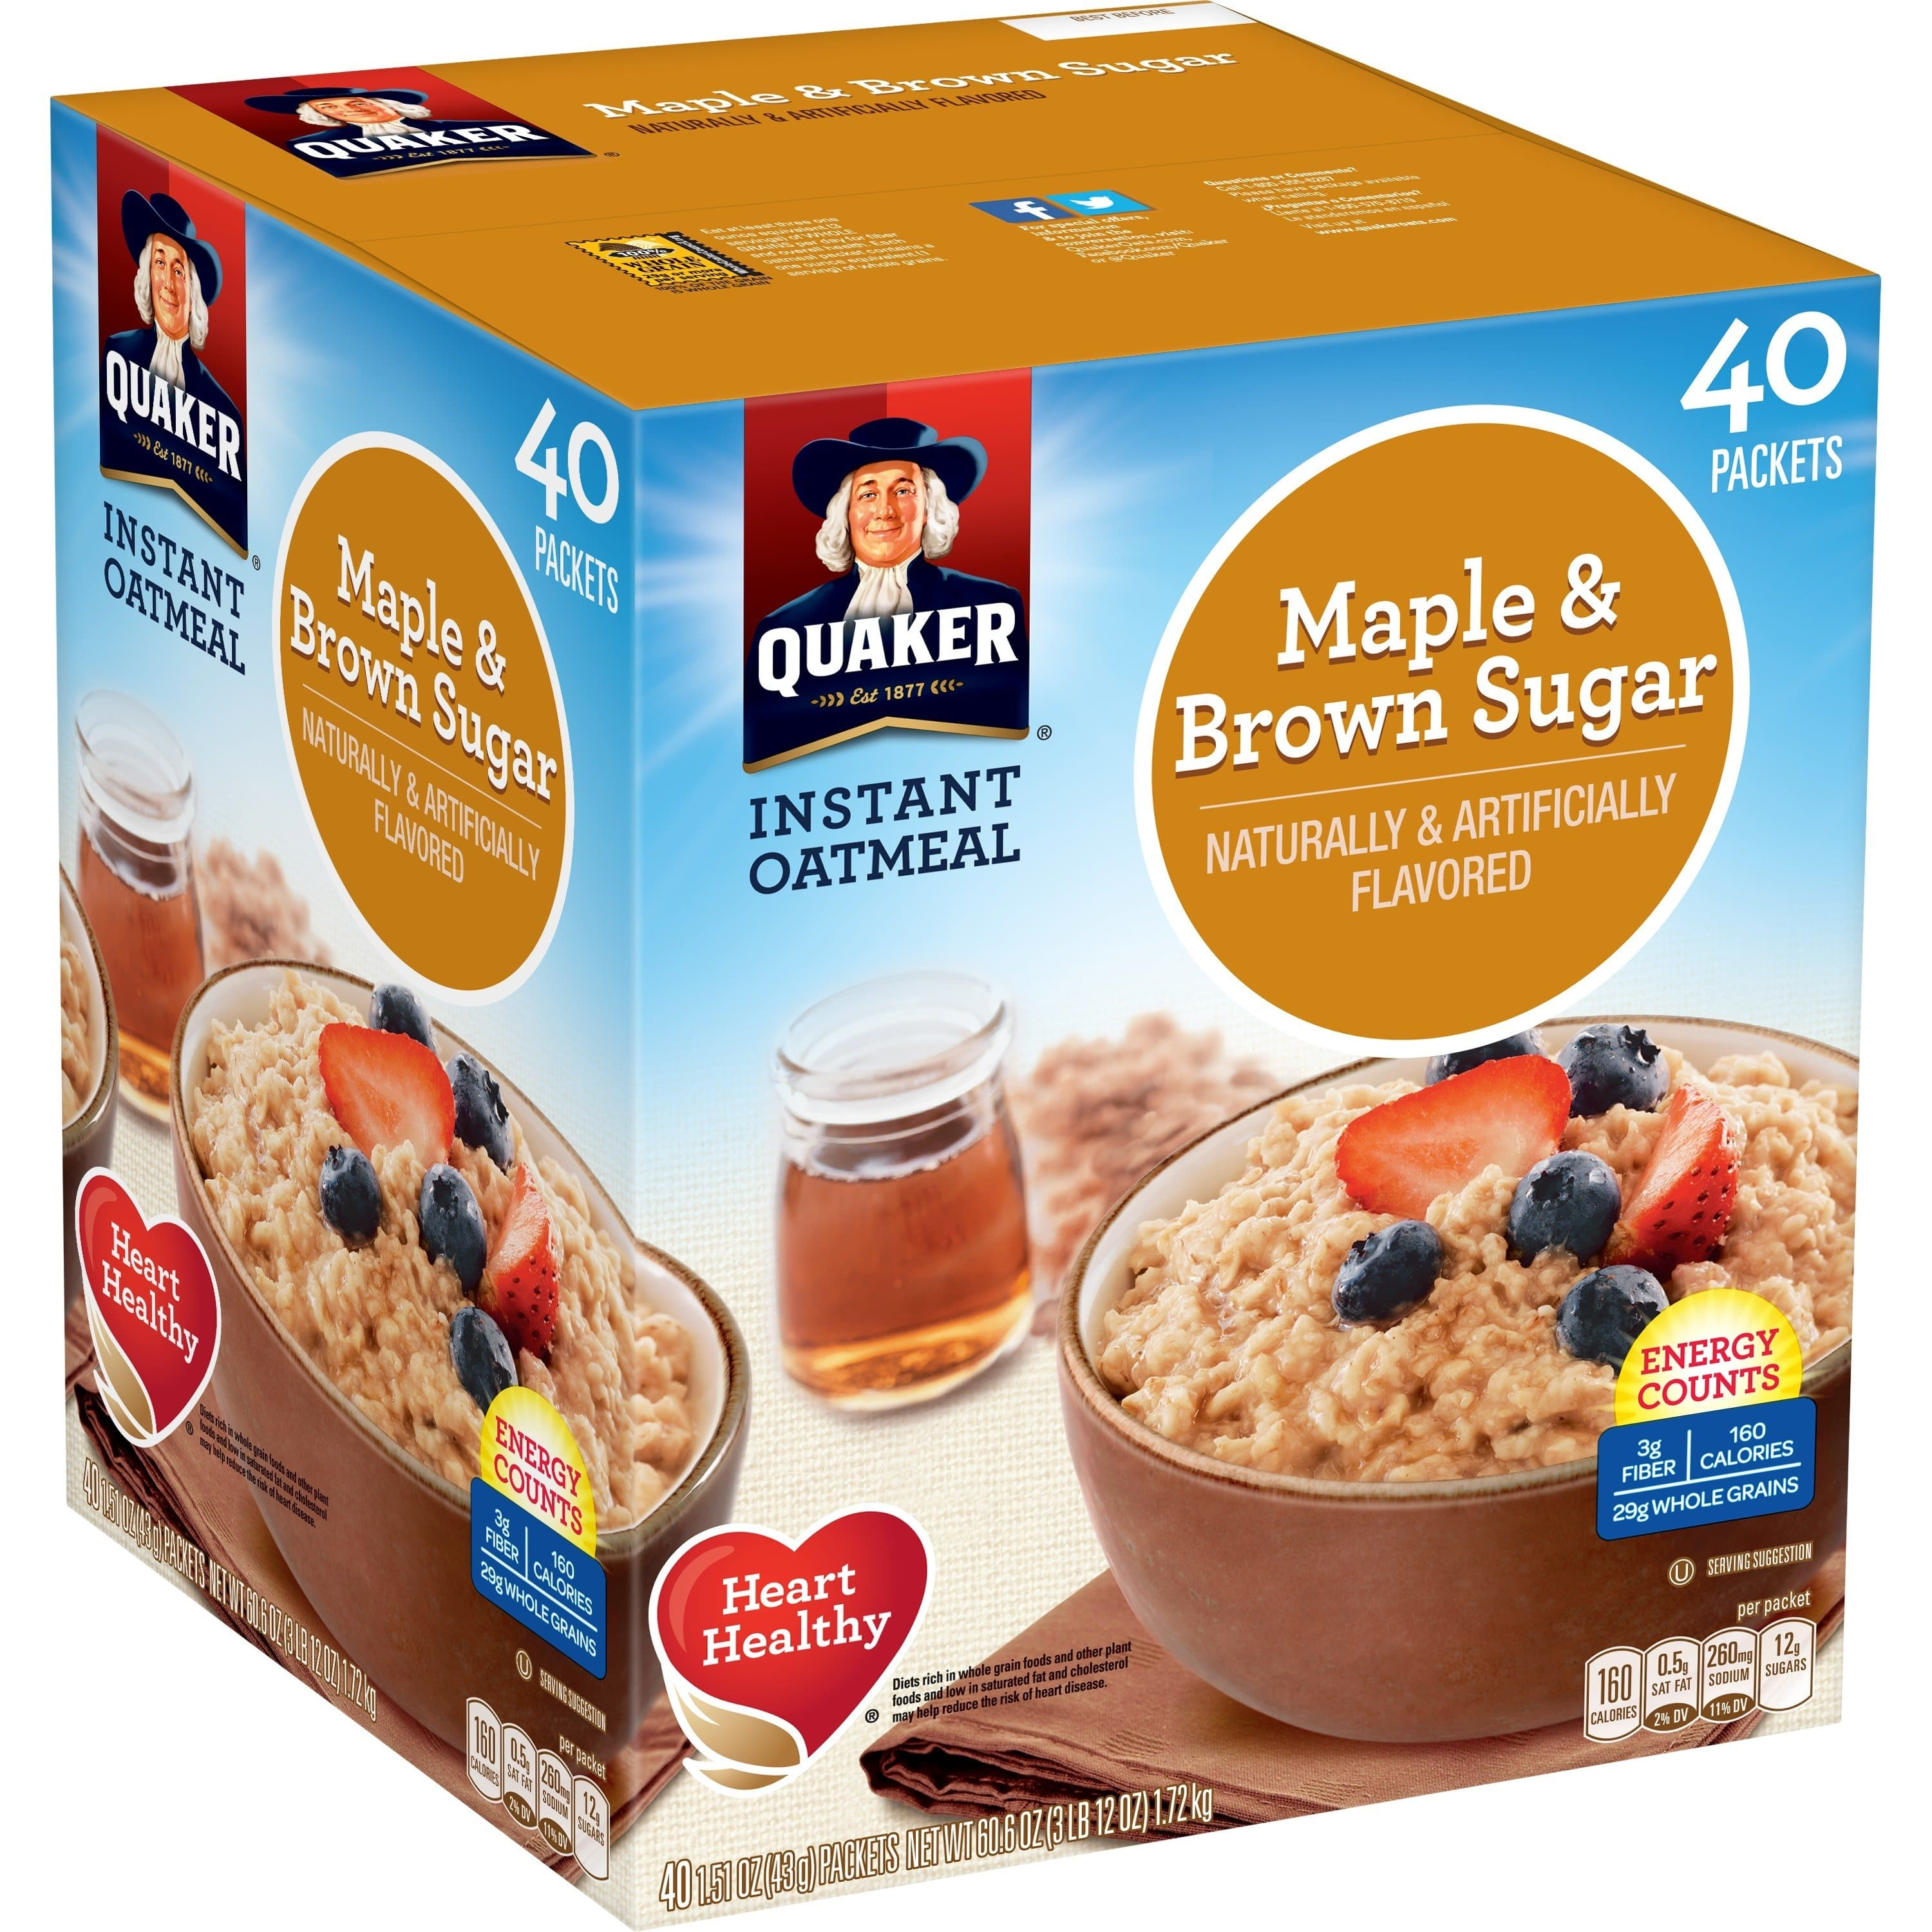 Quaker Instant Oatmeal: Maple (40 Packets) $8 AC / 3 Flavor Variety Pack (52 Packets) $7.90 AC + Free Shipping